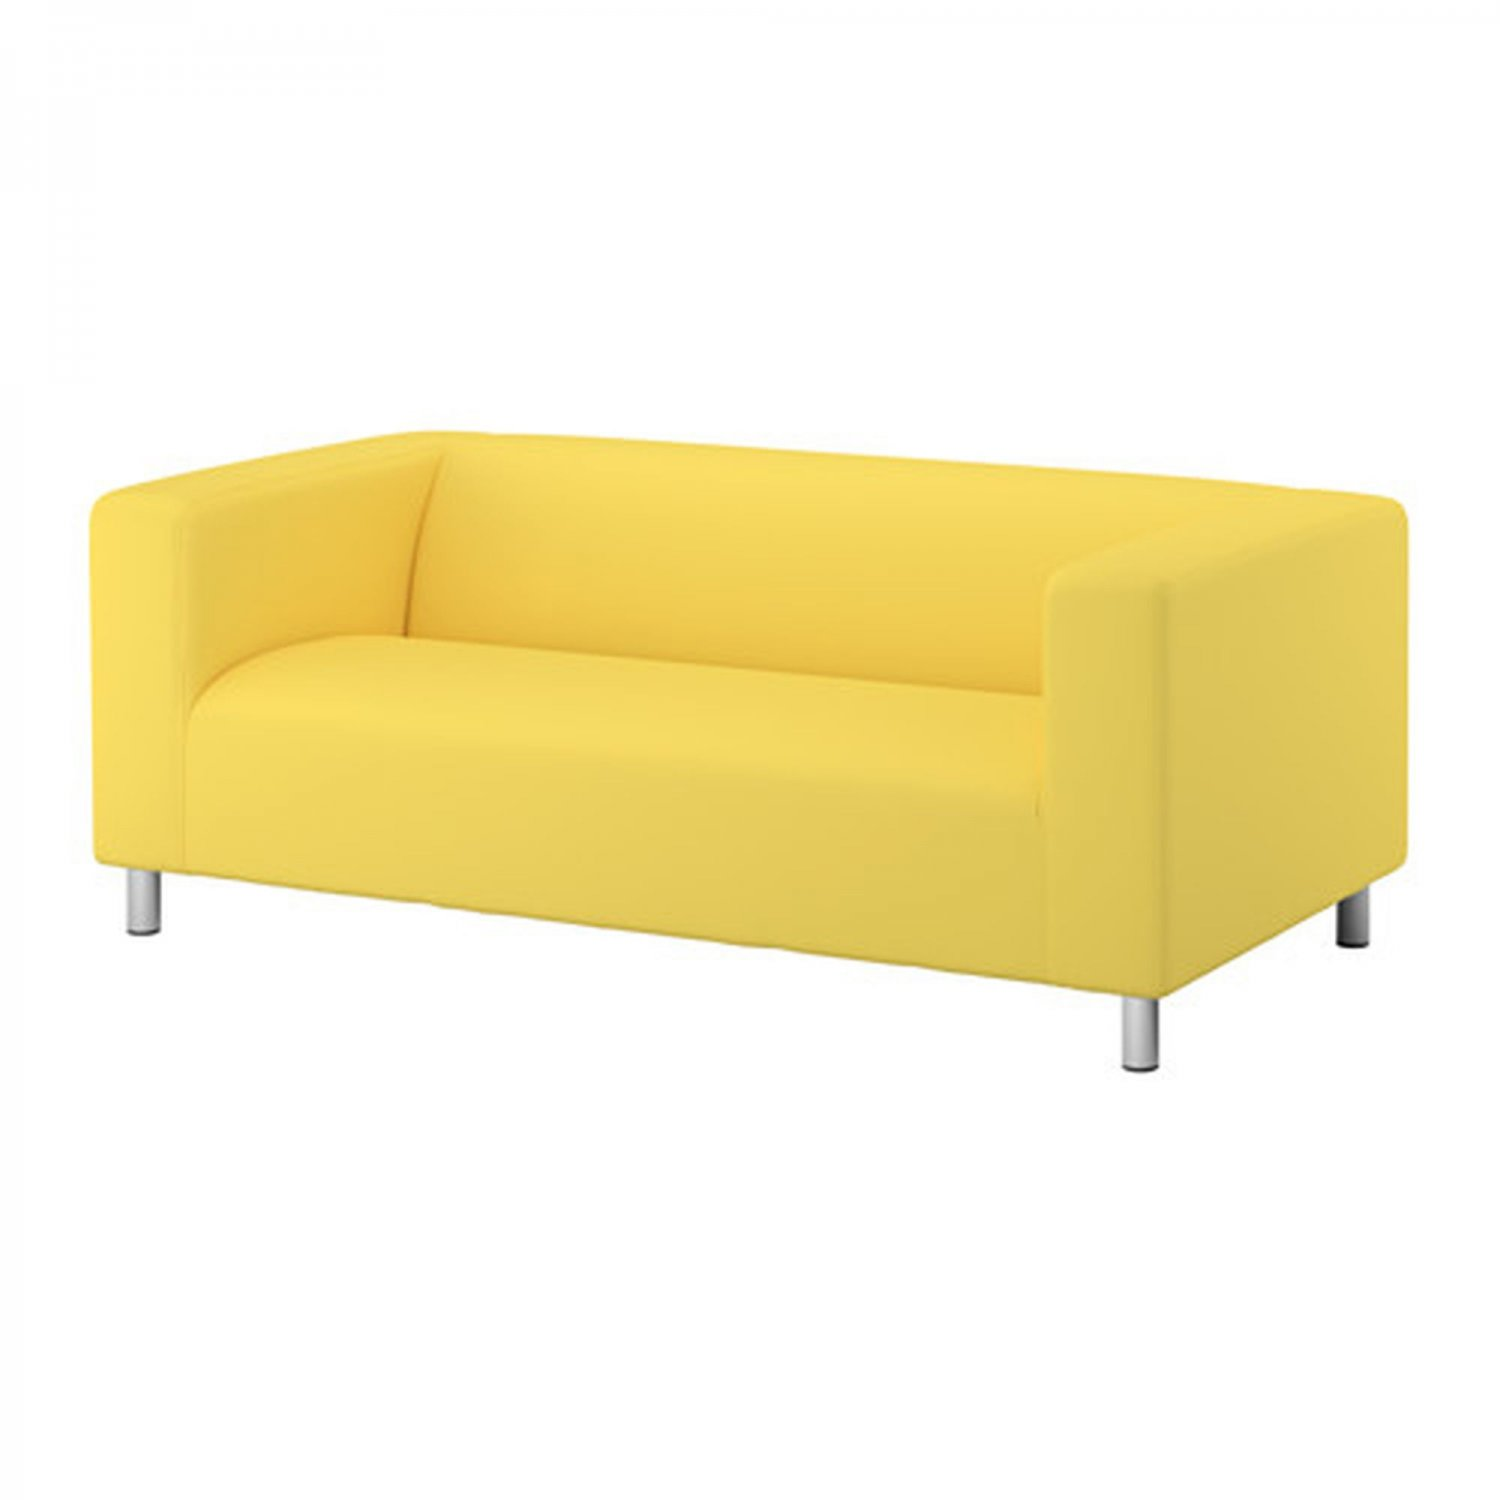 Ikea Klippan Loveseat Sofa Slipcover Cover Vissle Yellow